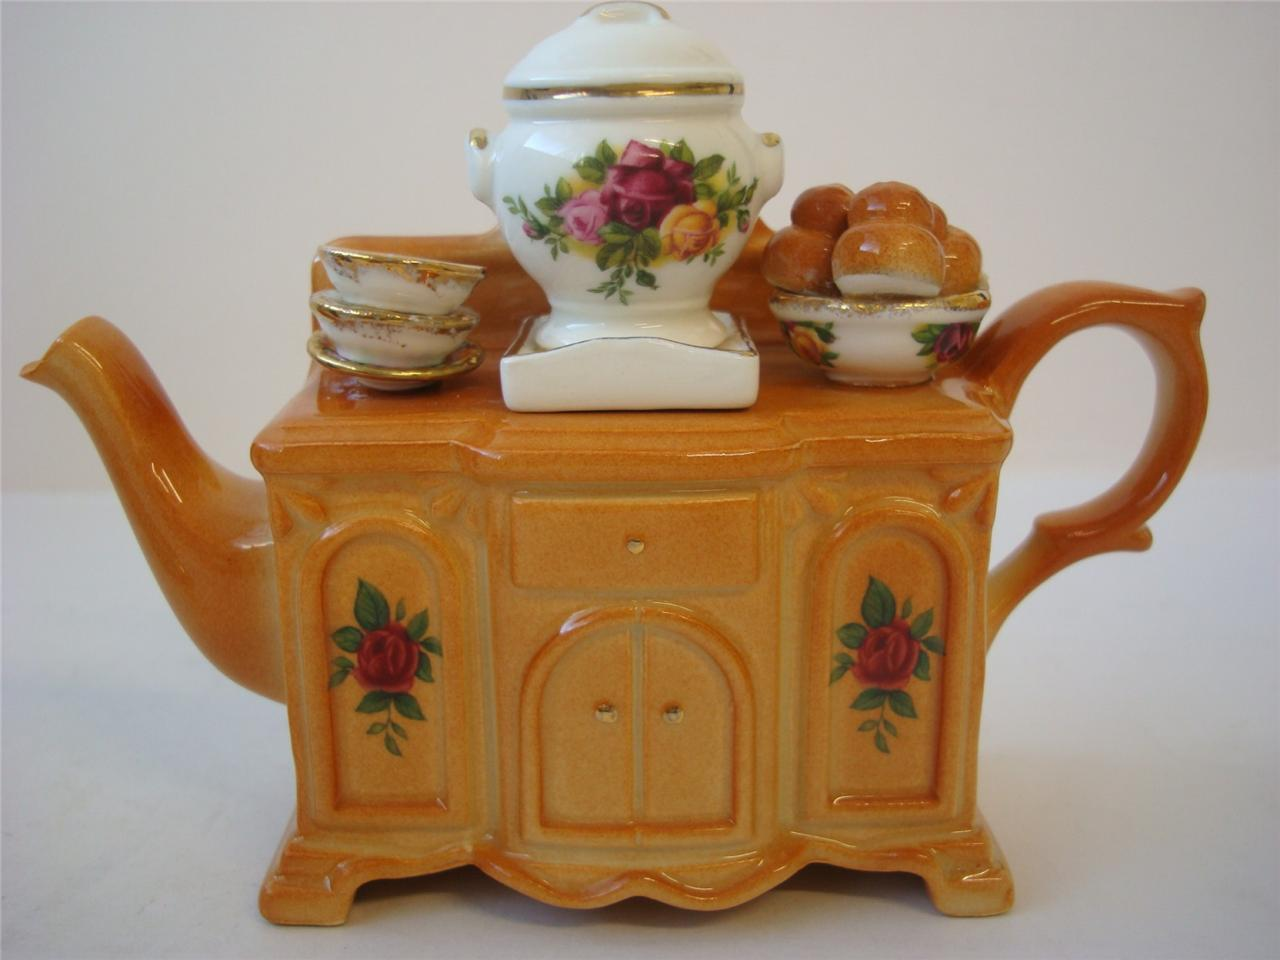 ROYAL ALBERT Royal Albert old country roses sideboard teapot novelty size made in United Kingdom rose rose antique vintage